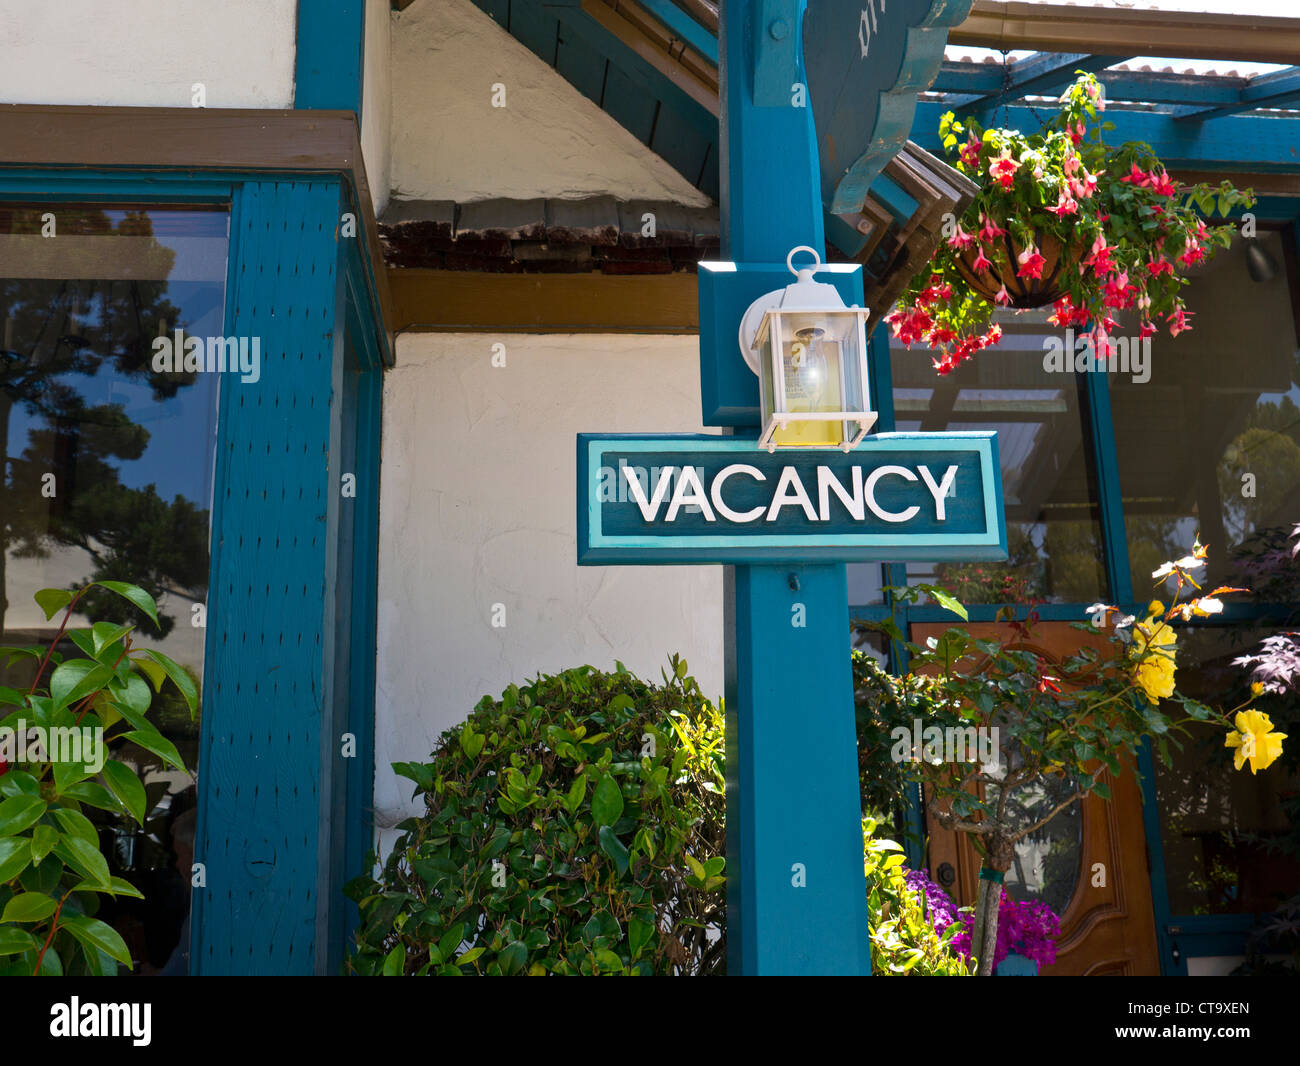 Vacancy sign lit at renowned boutique hotel Normandy Inn Carmel by the Sea Ocean Drive Carmel California (CA) - Stock Image